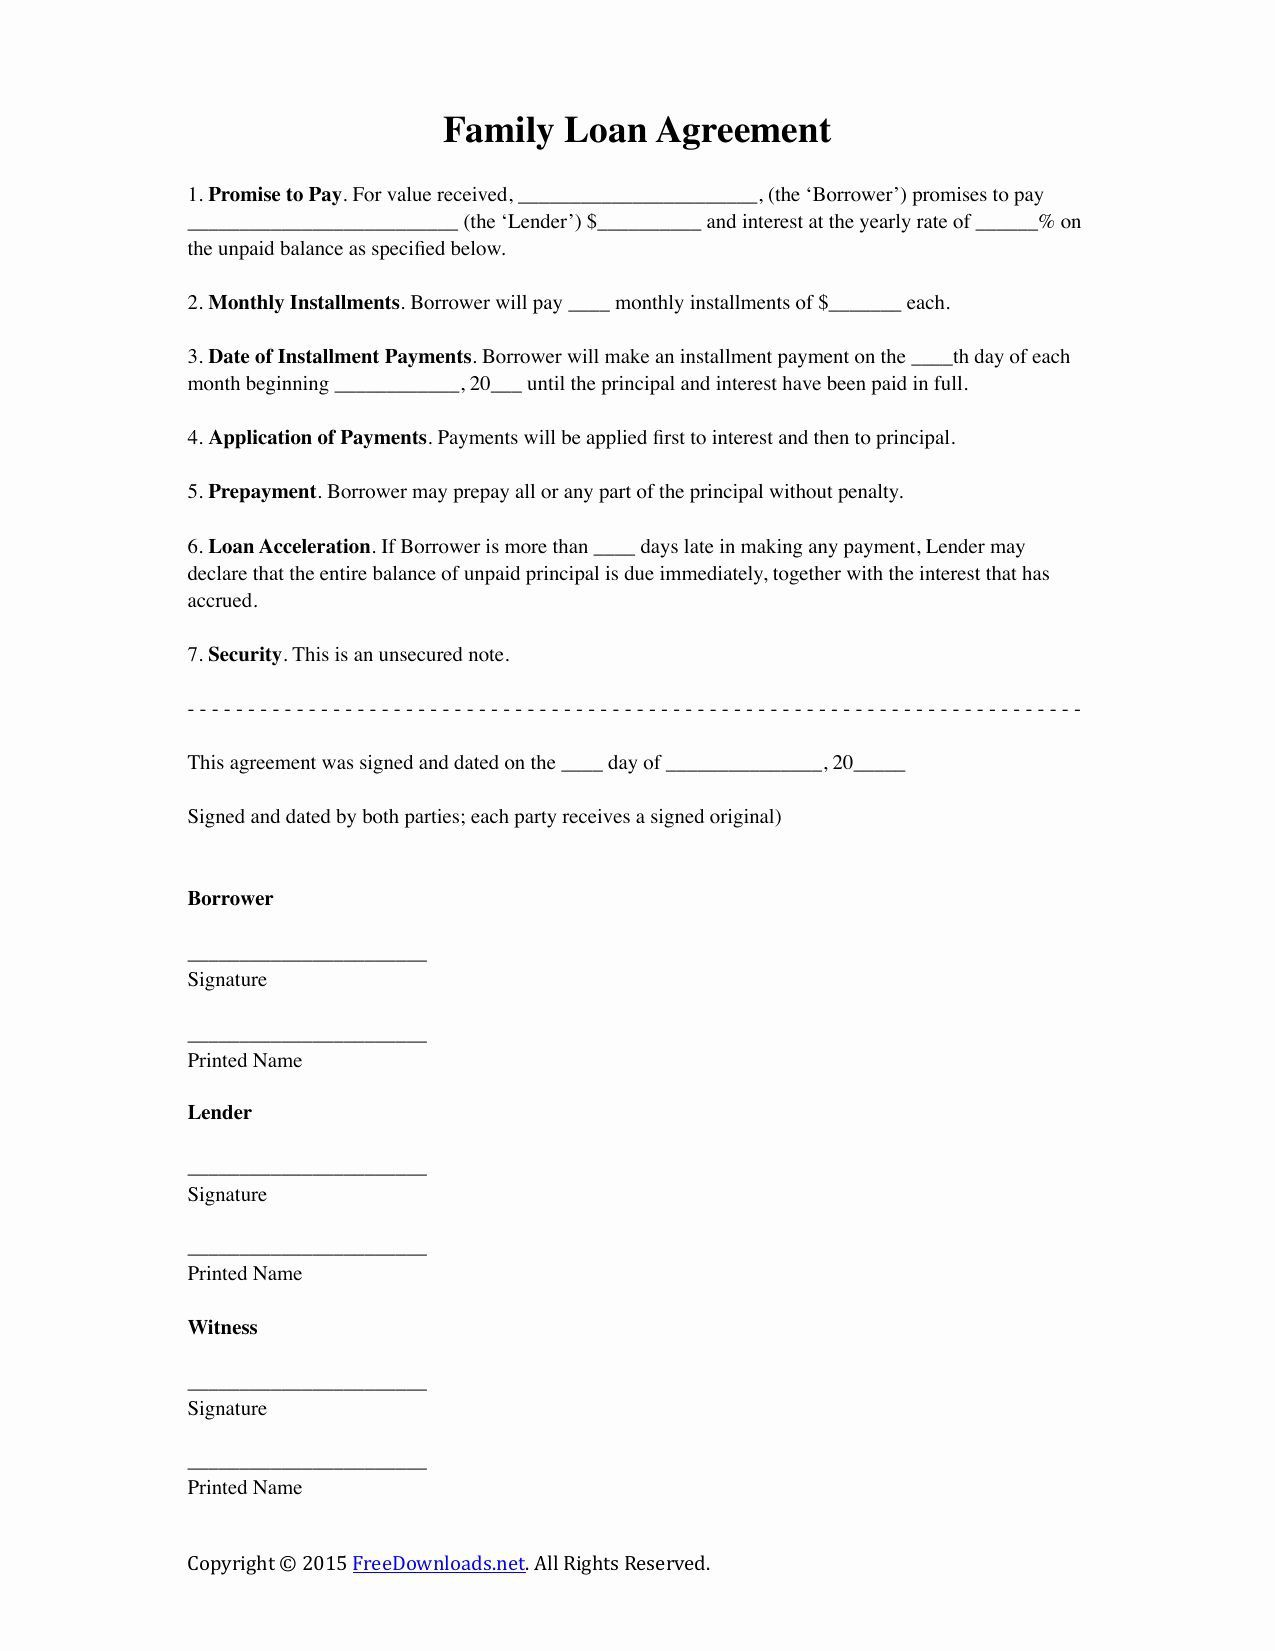 000 Frightening Family Loan Agreement Template Uk Free Picture Full